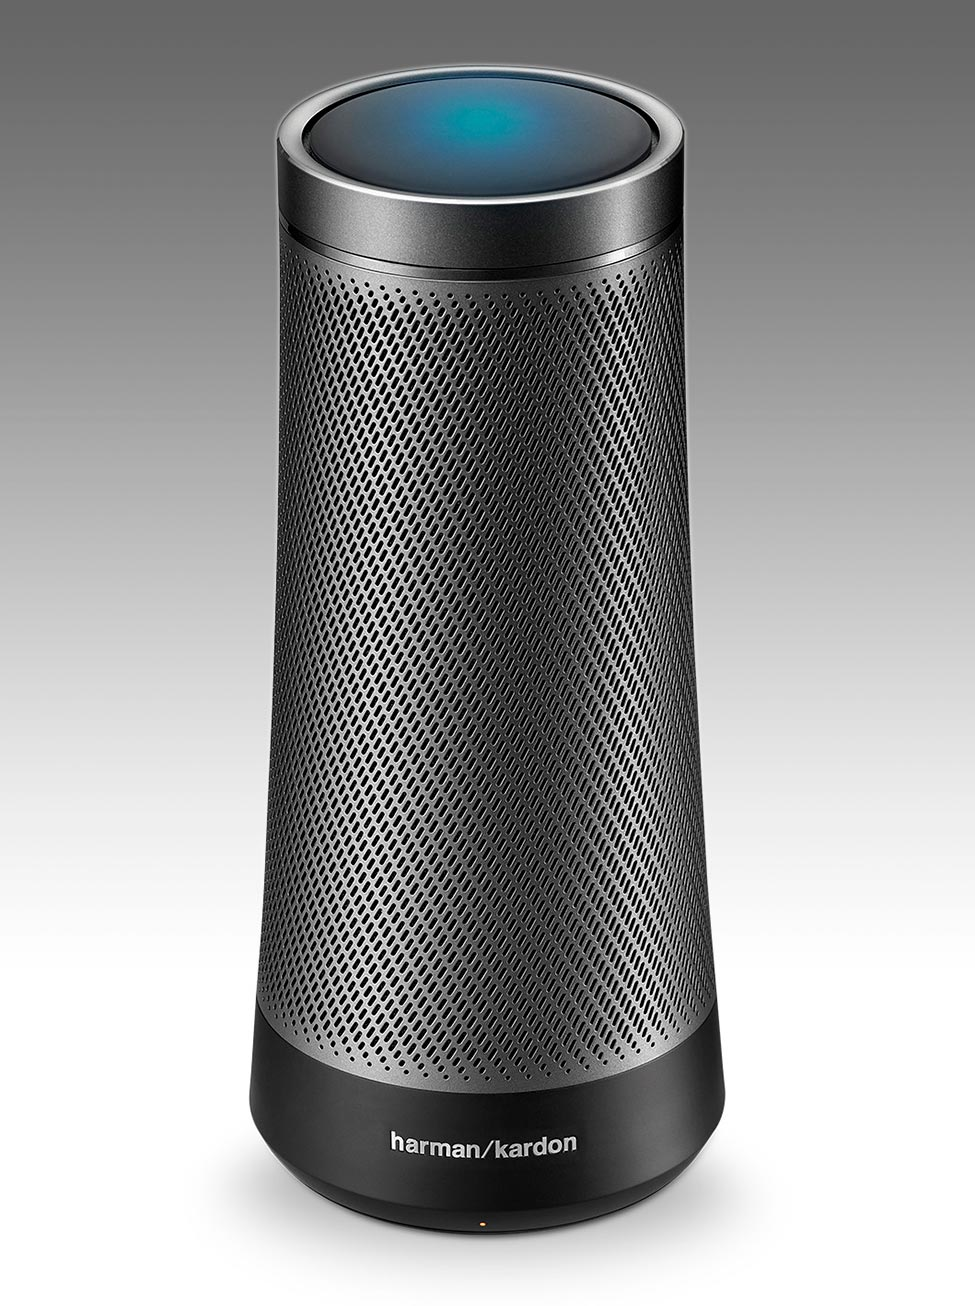 Harman Kardon Invoke smart speaker